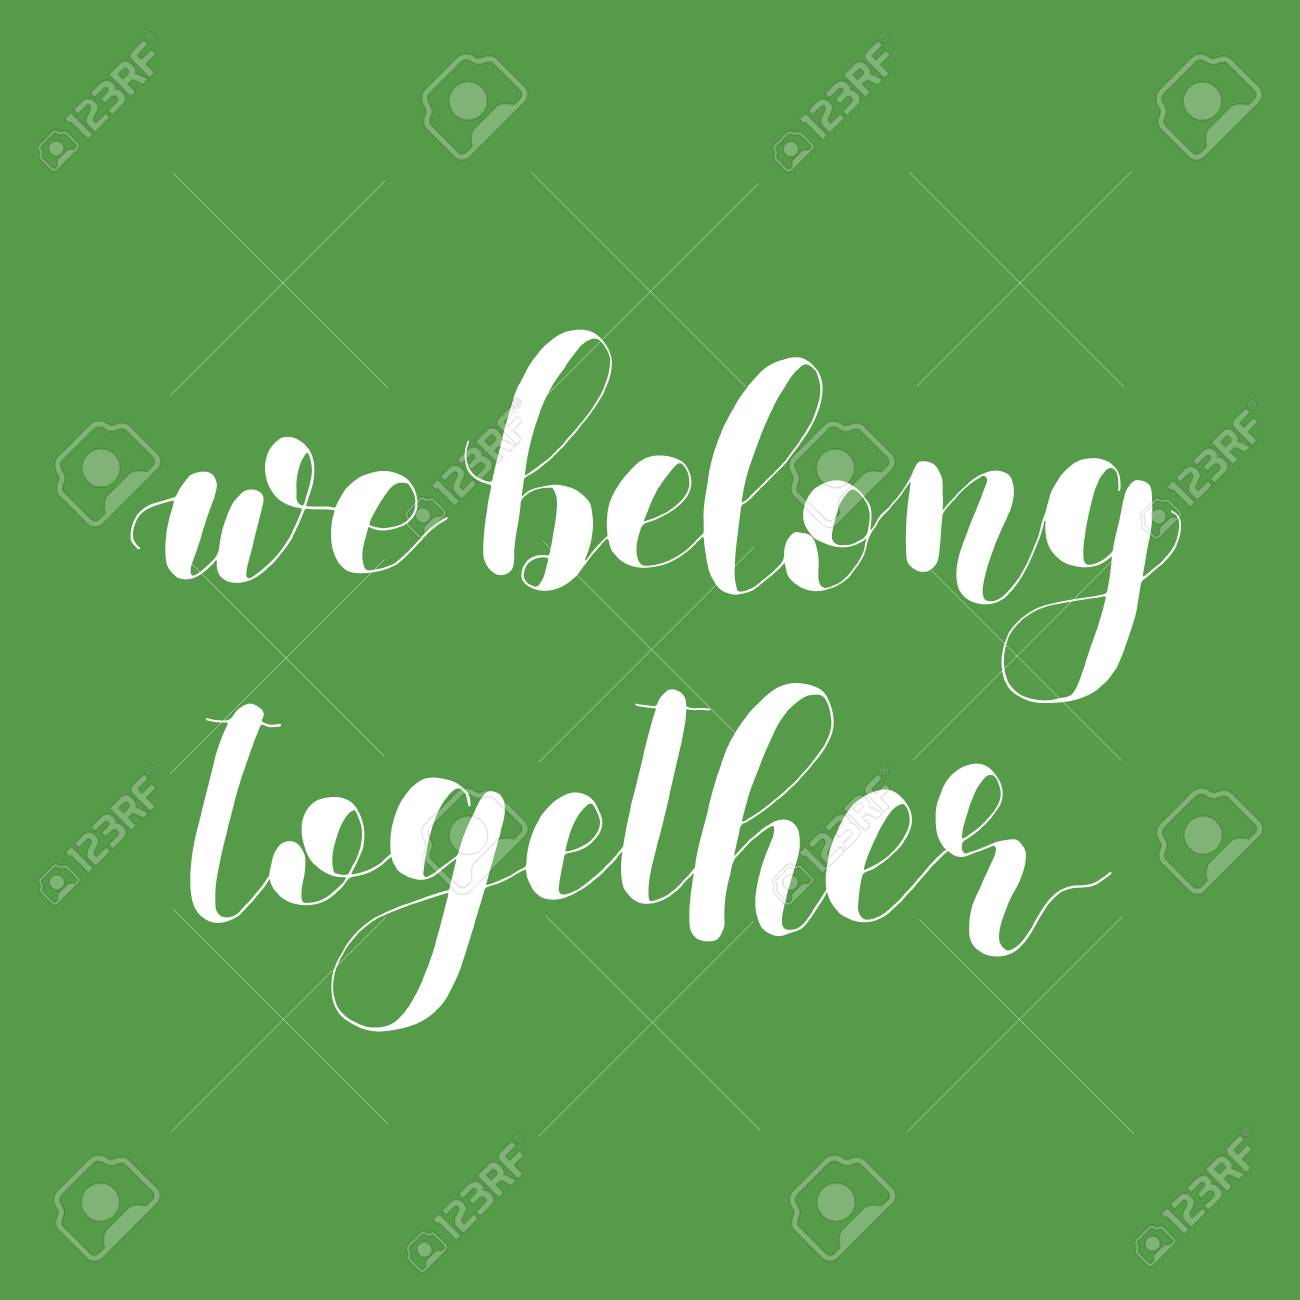 624153670 We Belong Together. Lettering Illustration. Royalty Free Cliparts ...